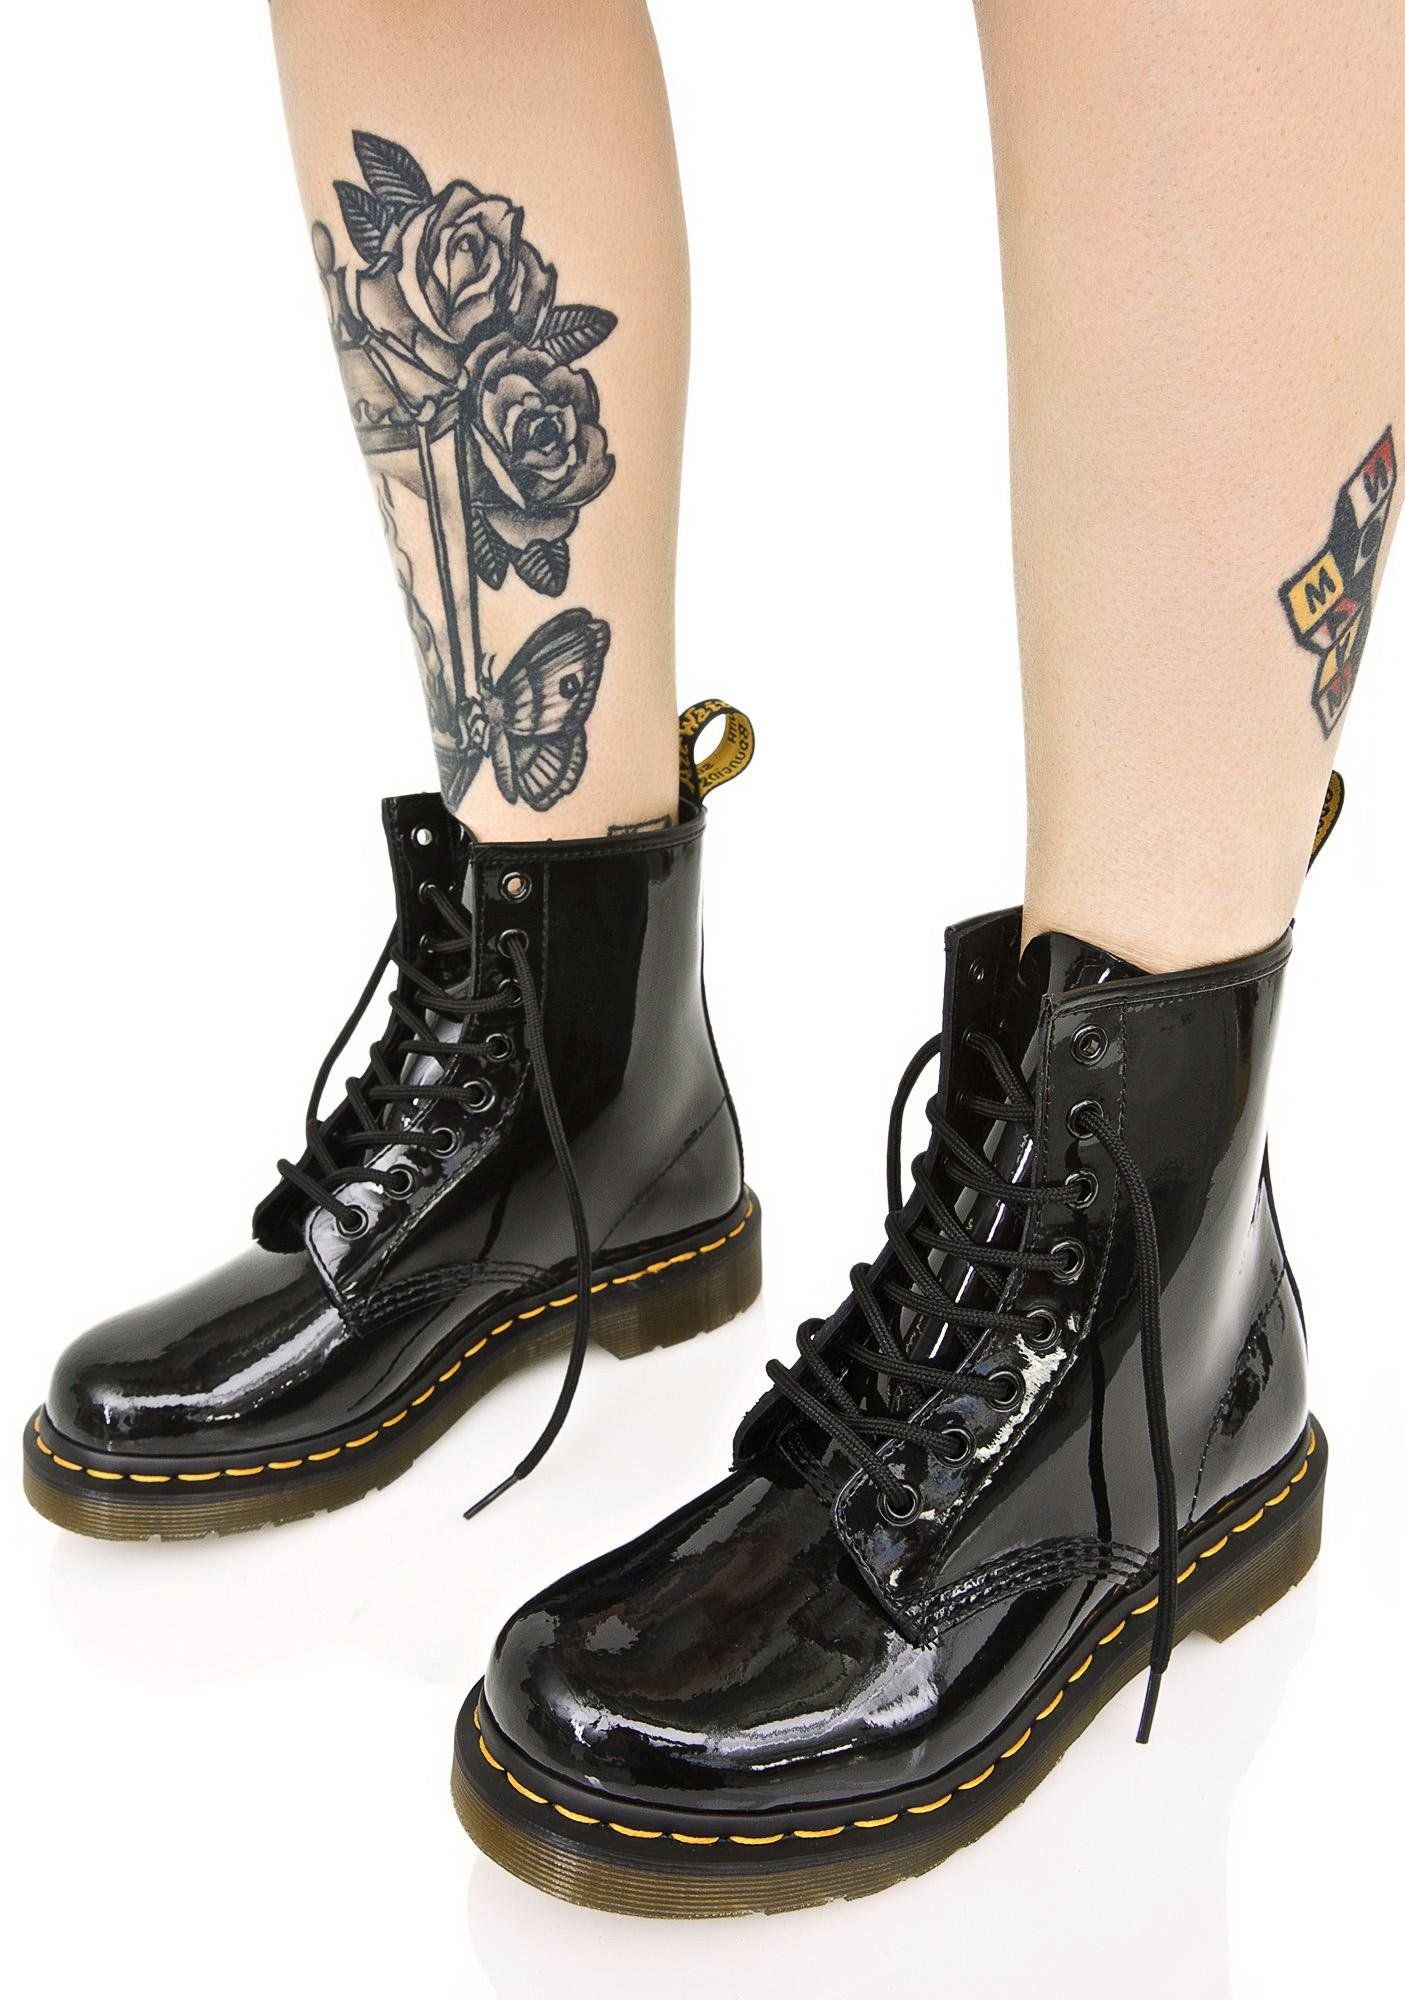 396b3e9370a2 Dr. Martens Black Patent 1460 8 Eye Boots ...fights